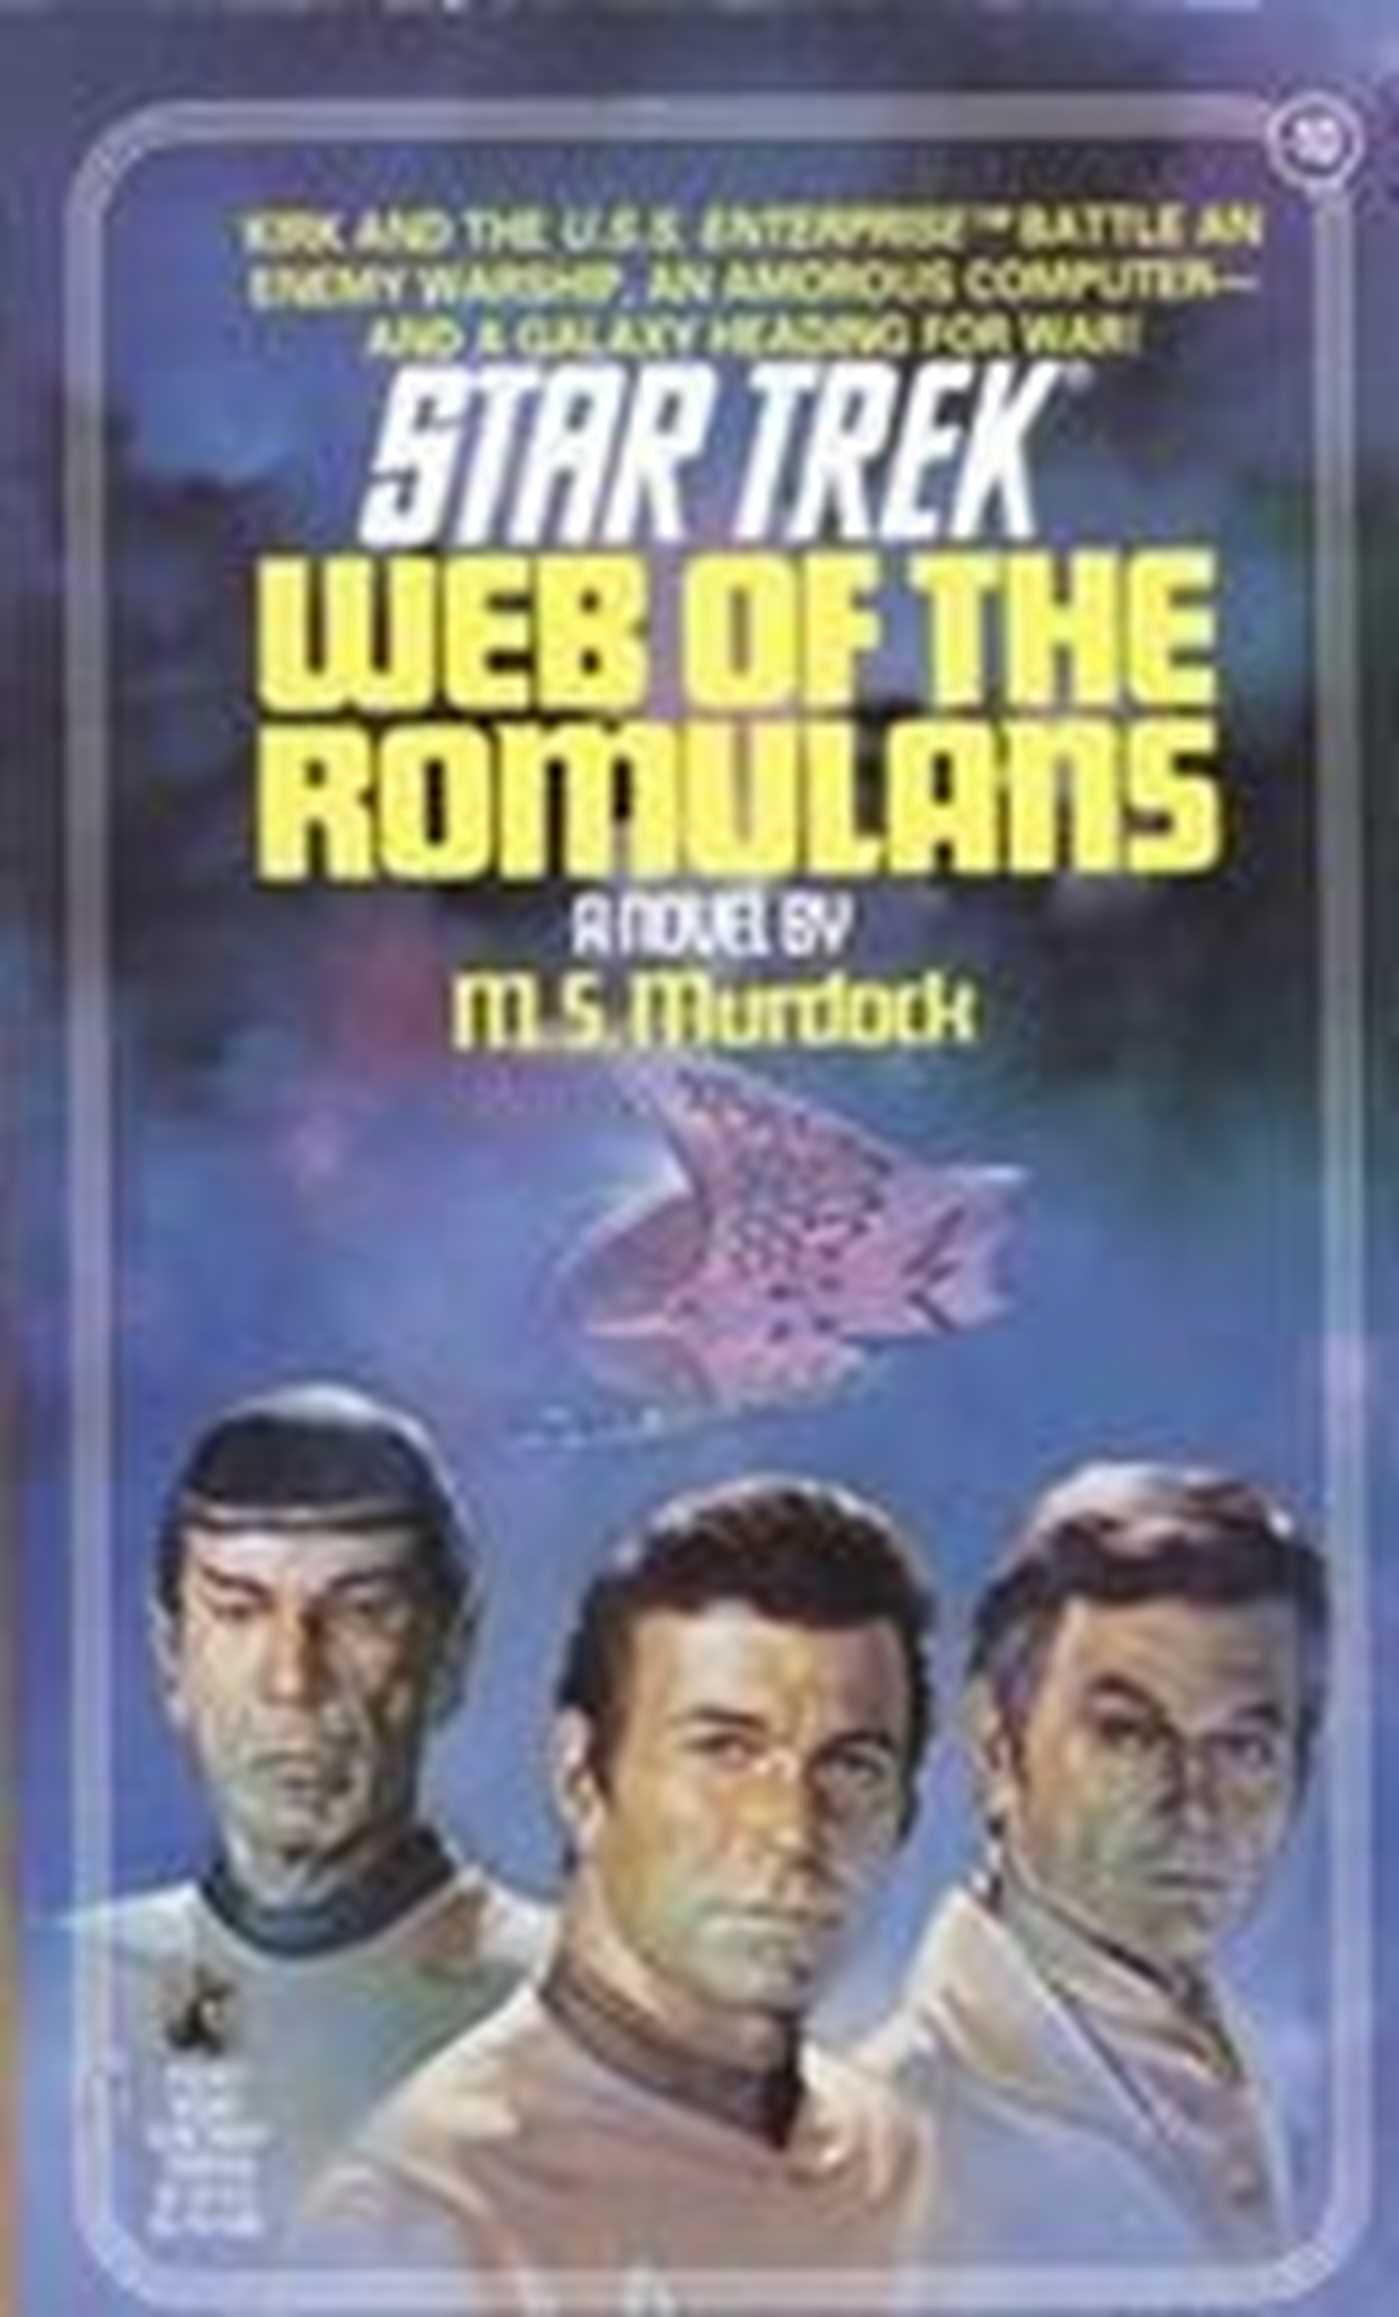 Web of the romulans 9780743419611 hr